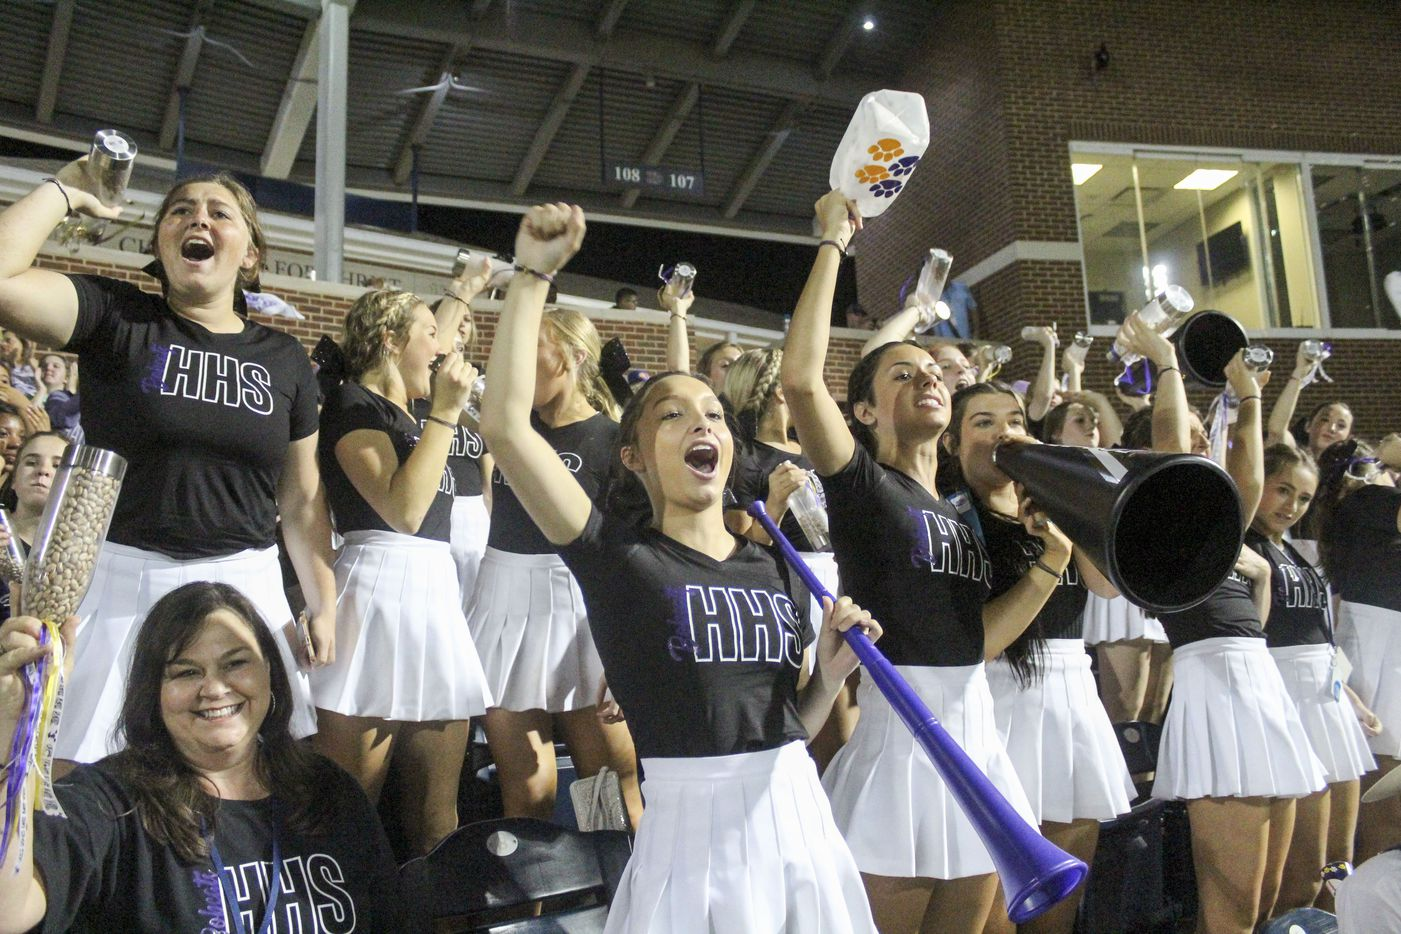 Hallsville High School cheerleaders celebrate a hit during game two of the UIL baseball 5A Region II final series against Frisco Wakeland at Horner Ballpark in Dallas on Friday, June 4, 2021. (Elias Valverde II / Special Contributor)